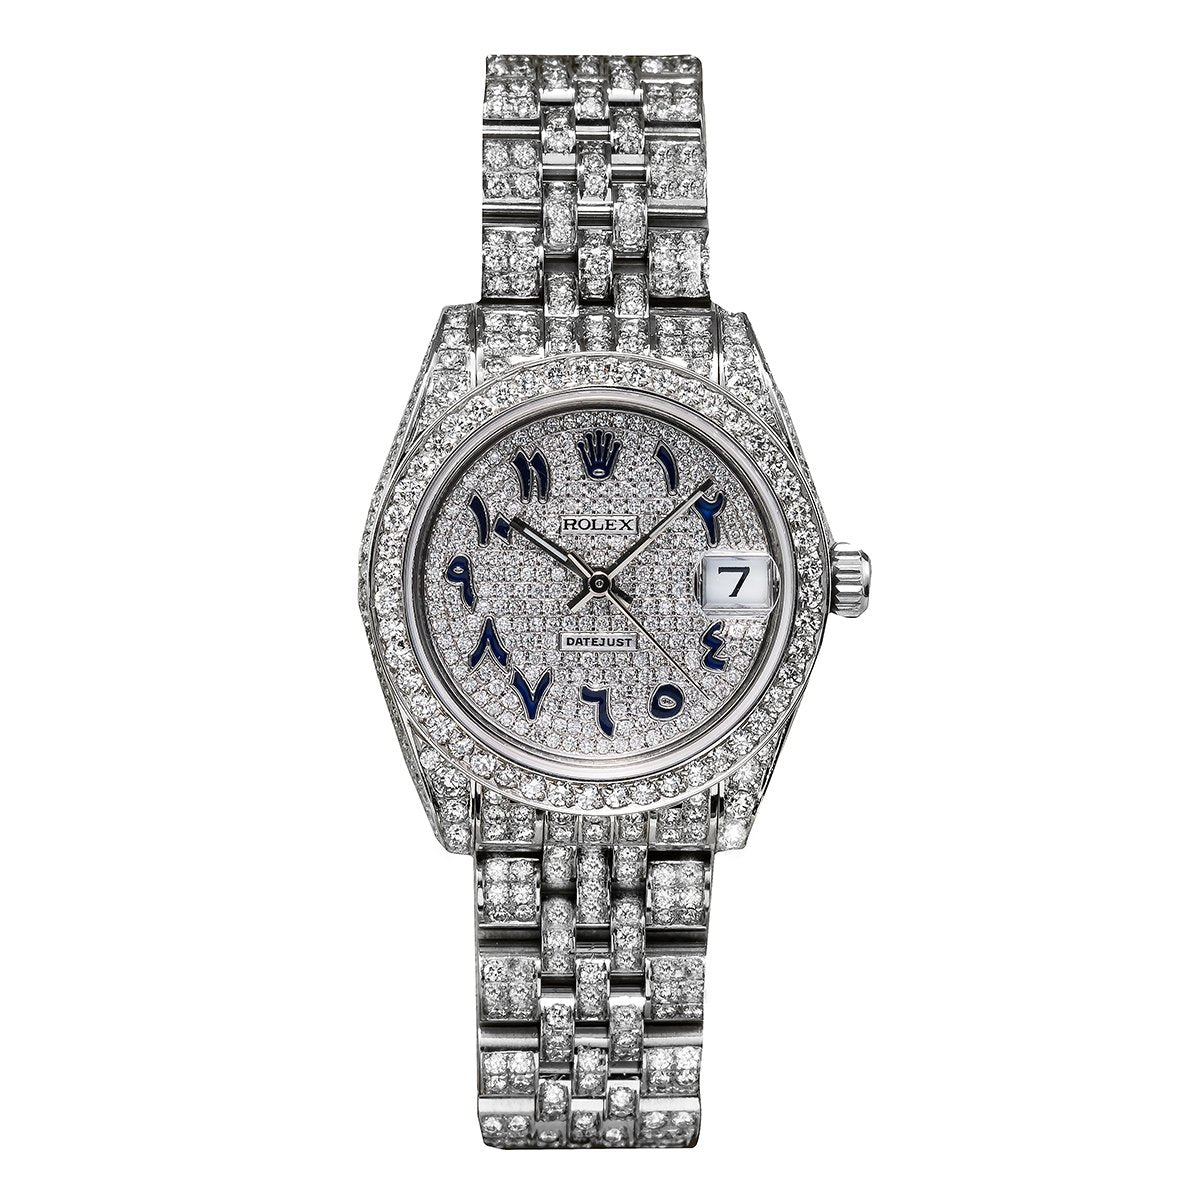 Rolex DateJust Diamond Watch, 179174 26mm, White Diamond Dial Blue Arabic Numerals with CT